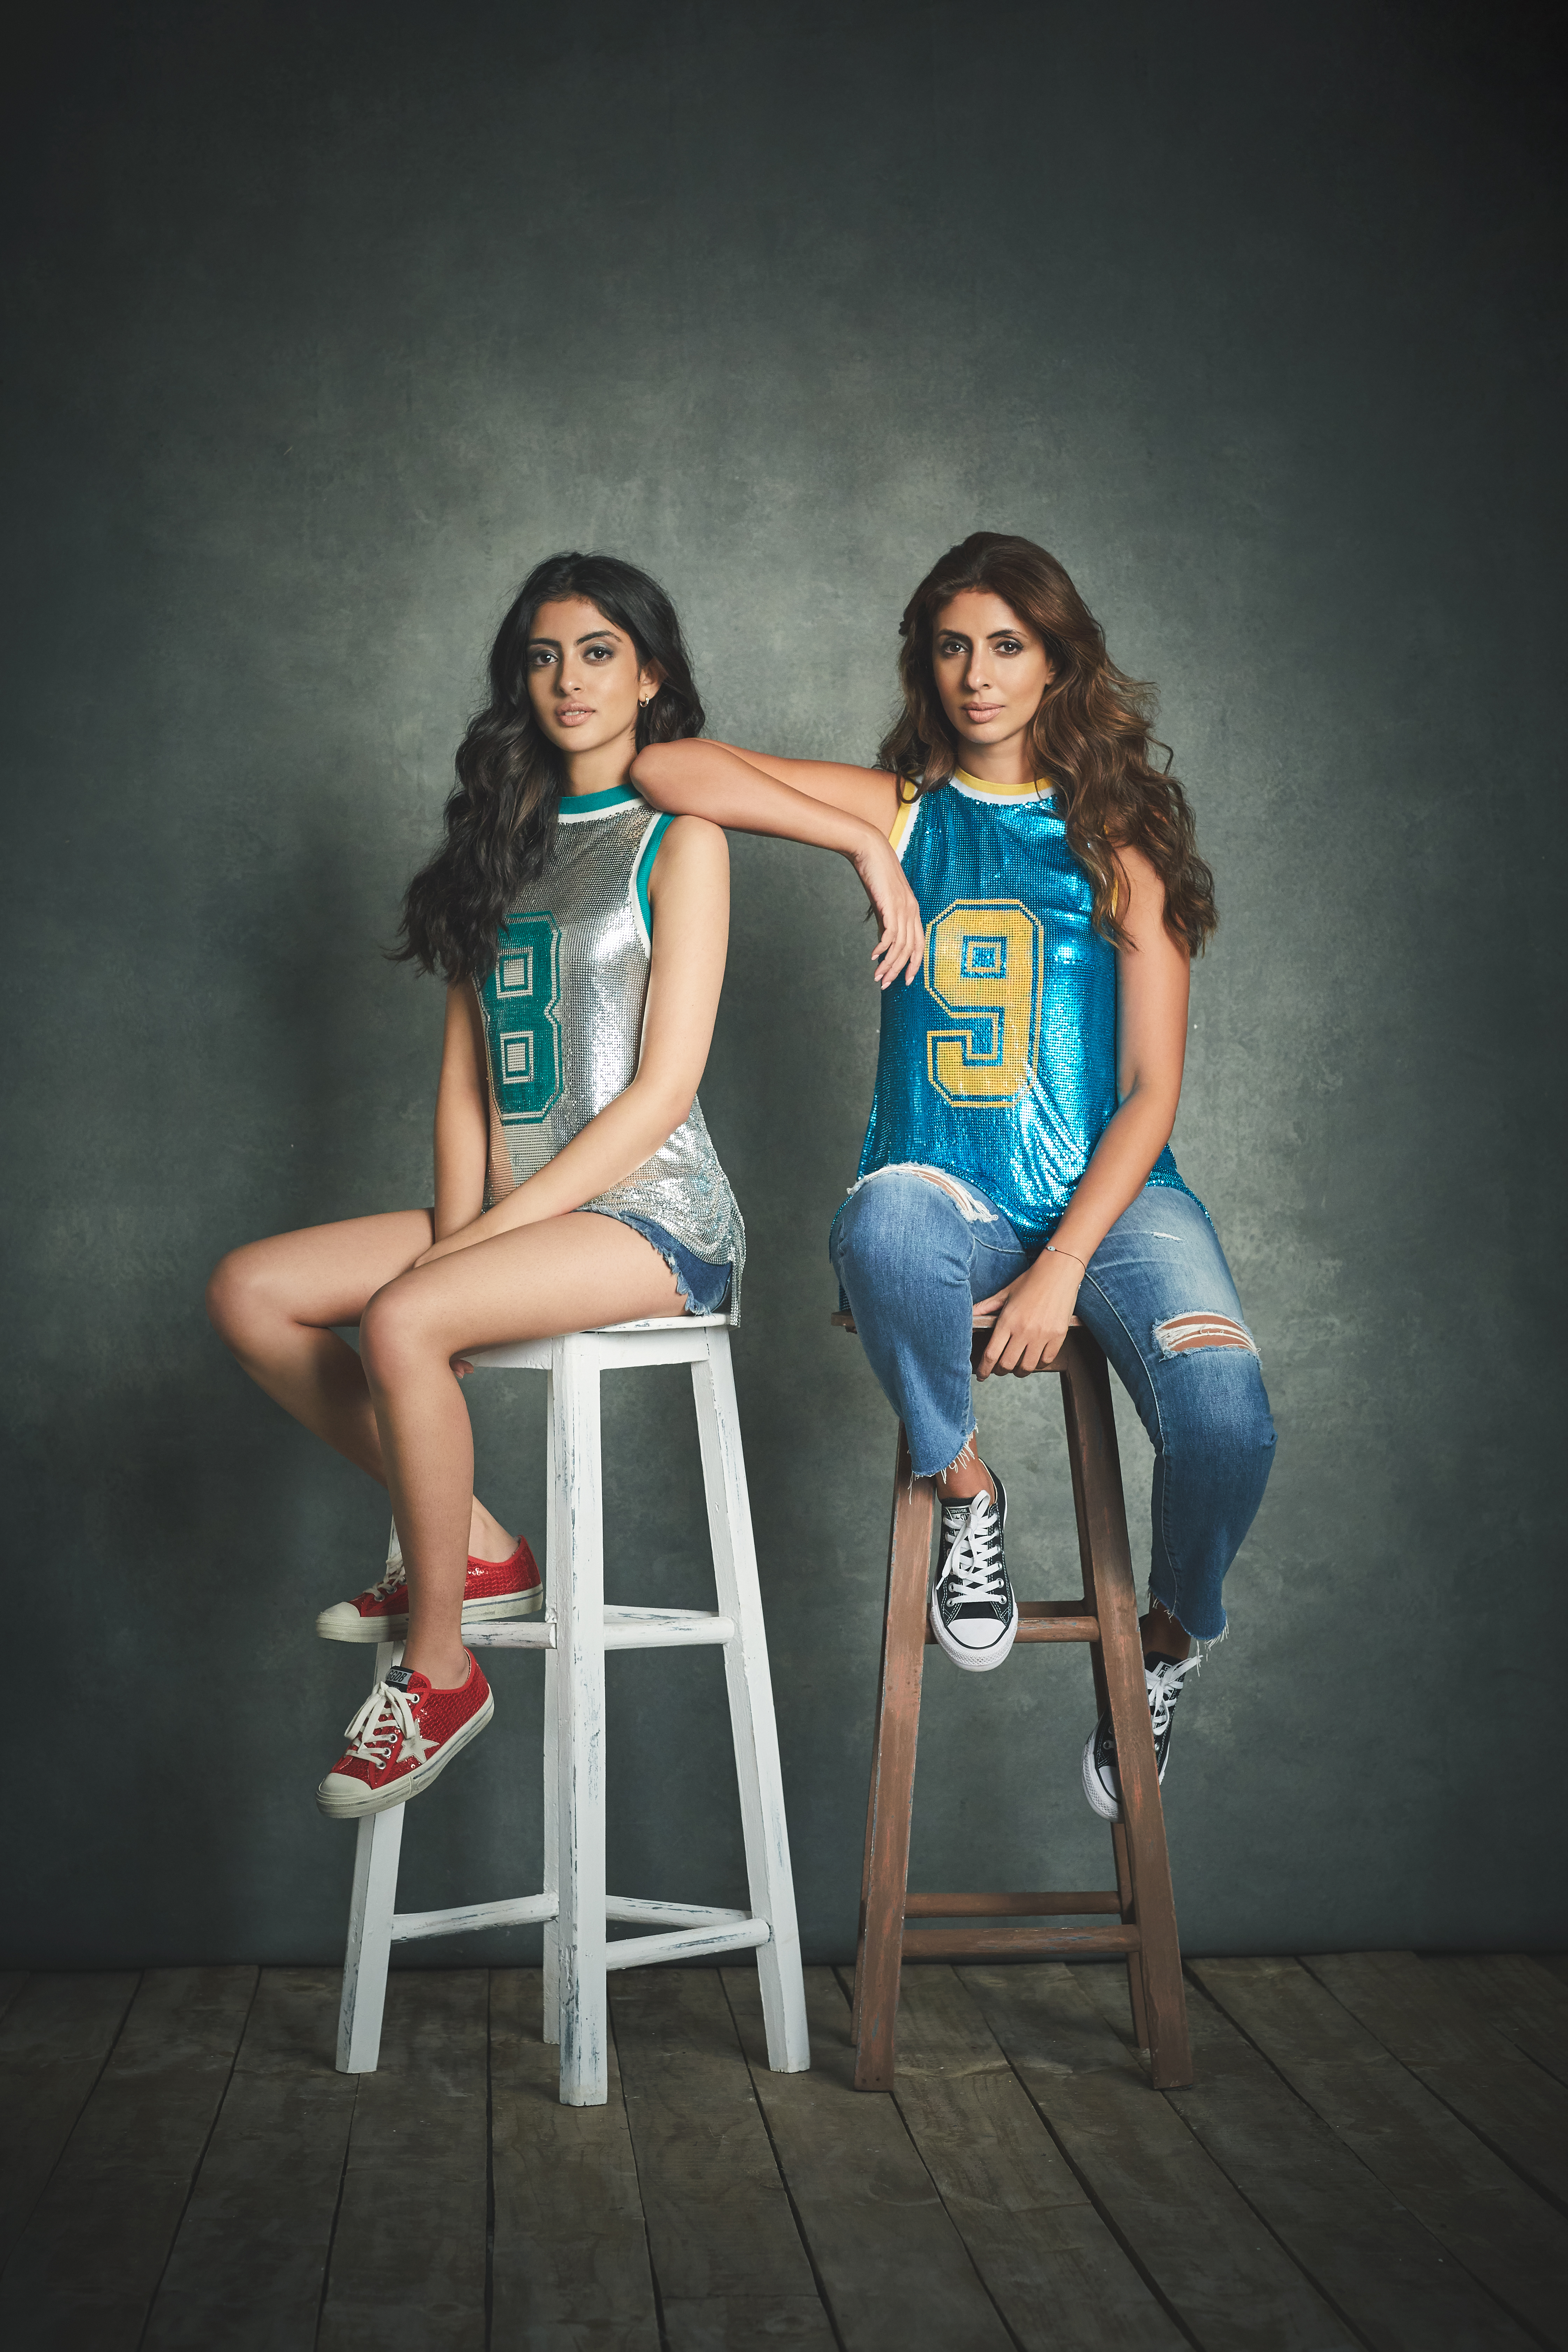 'I Felt The Need to Go Out There And Find My Purpose': Shweta-Bachchan Nanda